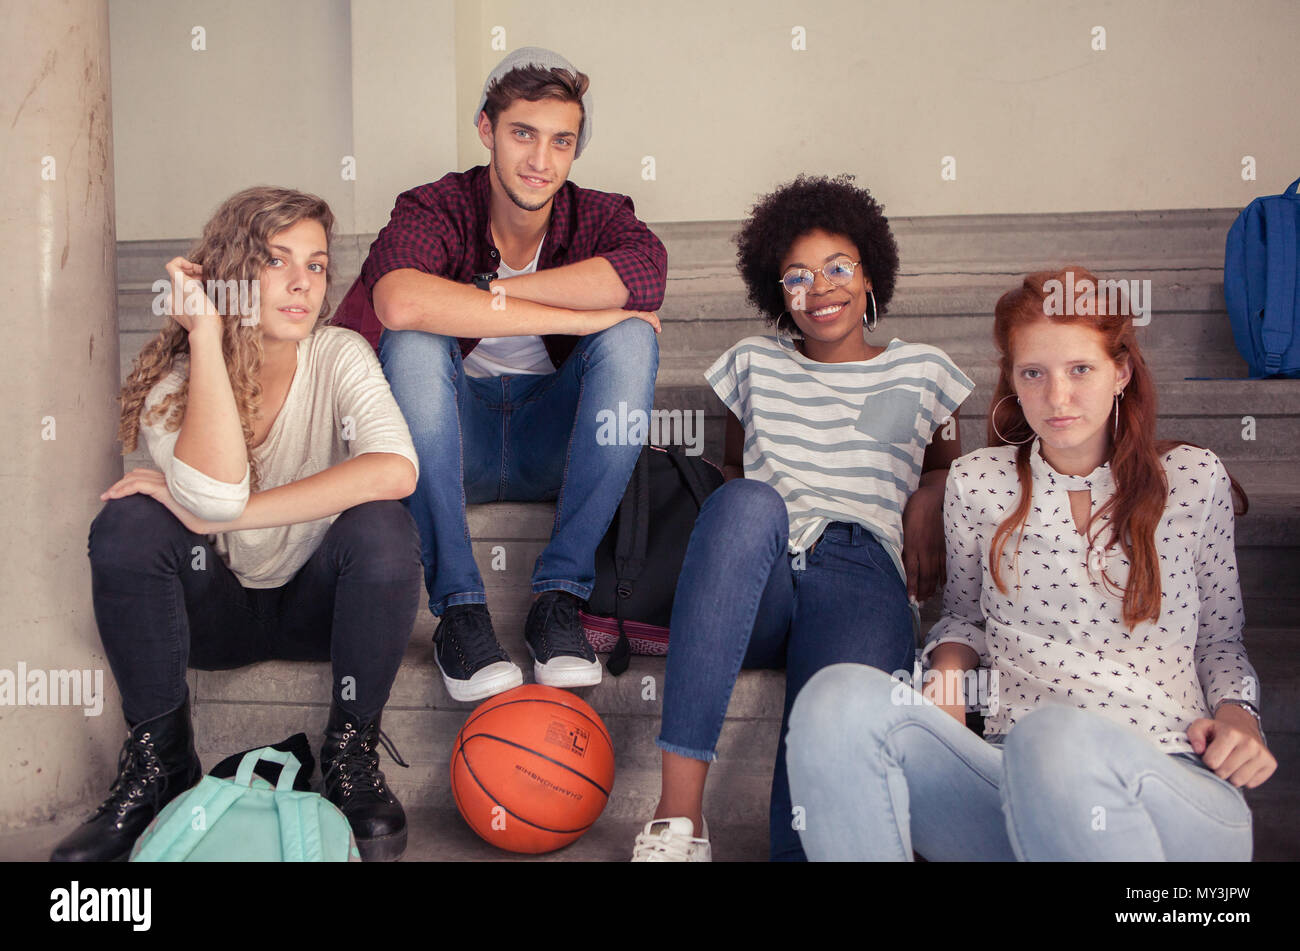 Group of friends hanging out together after school, portrait - Stock Image